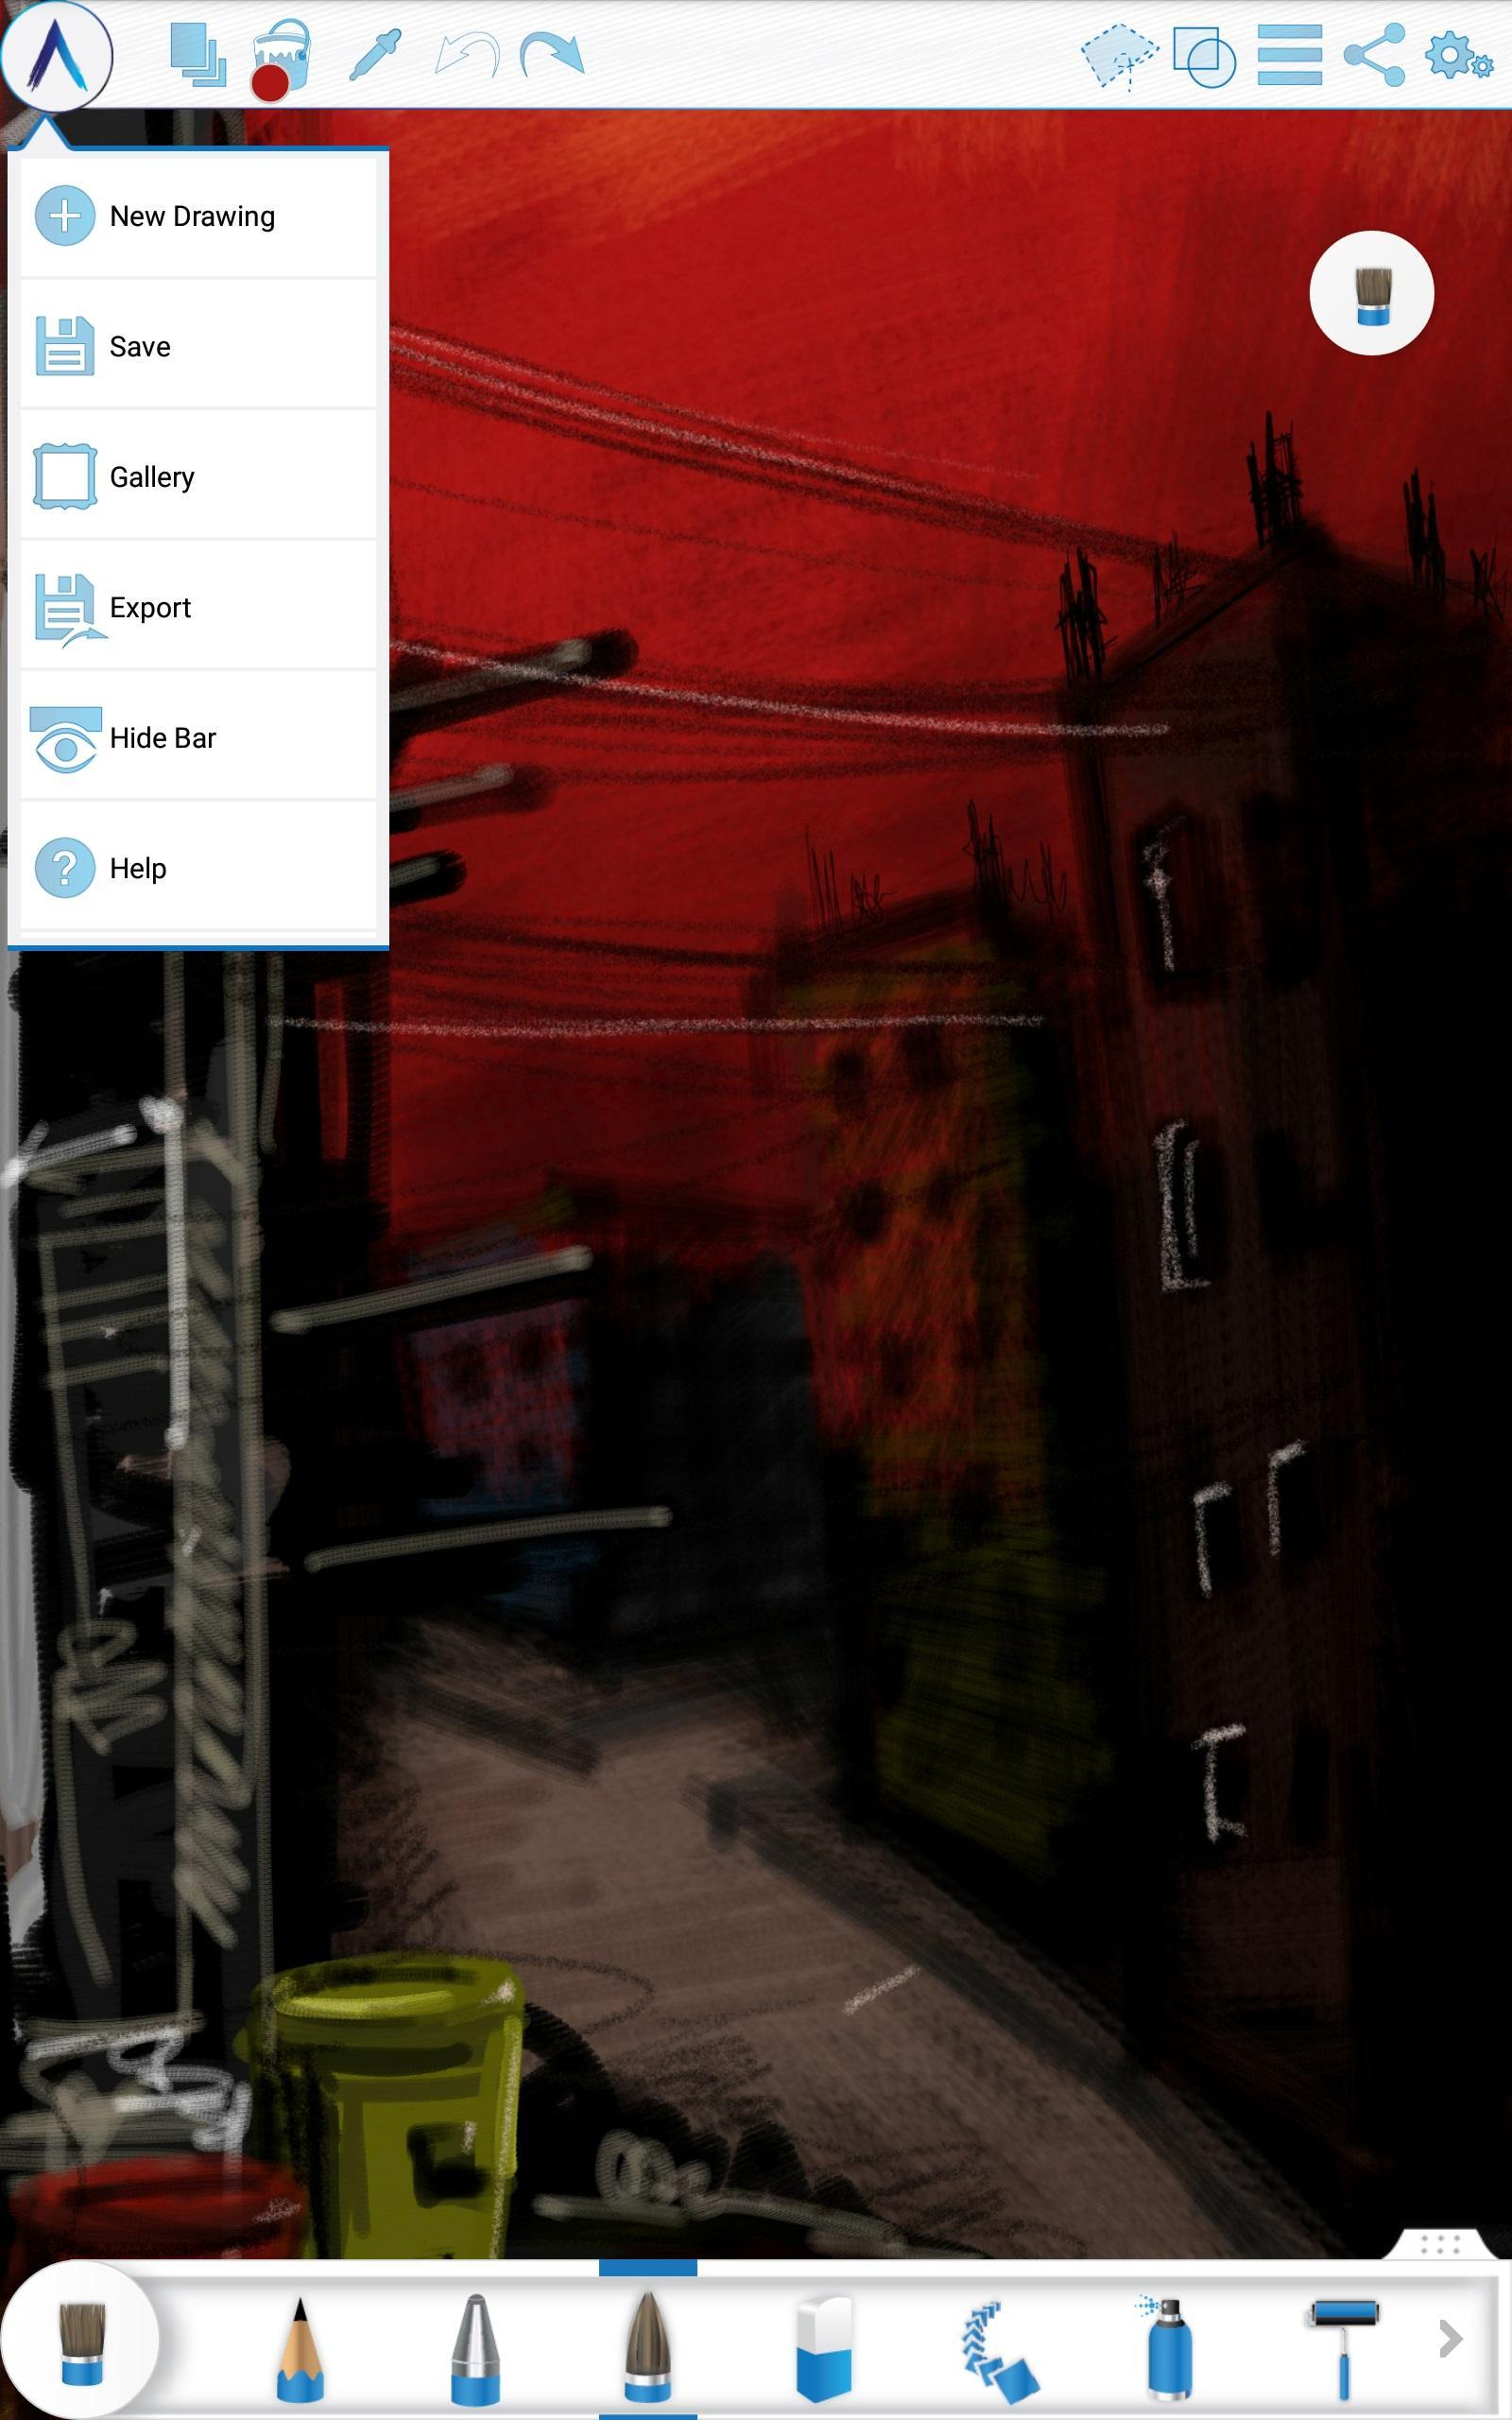 Artecture Draw, Sketch, Paint 5.2.0.4 Screenshot 22